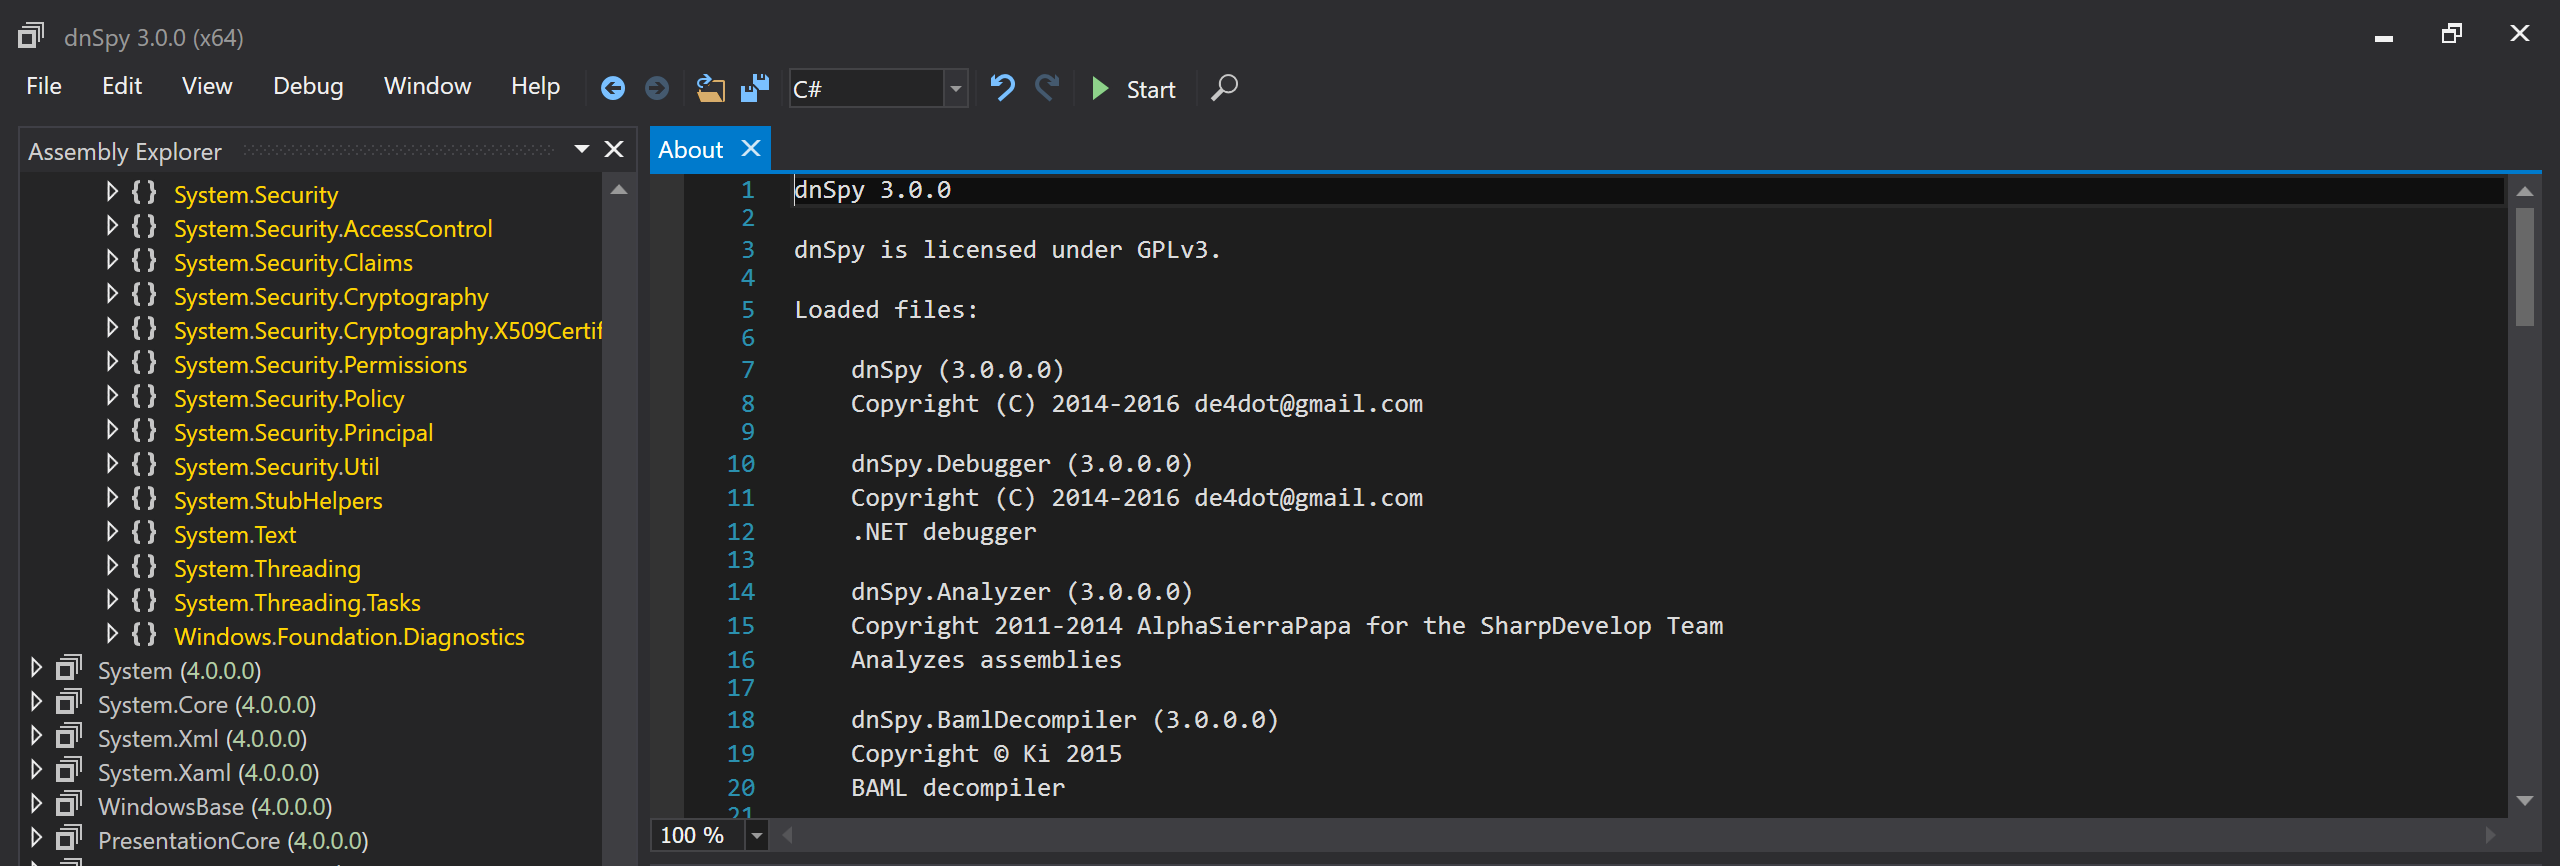 dnSpy - the one tool you will ever need* -  net blog - octal pl